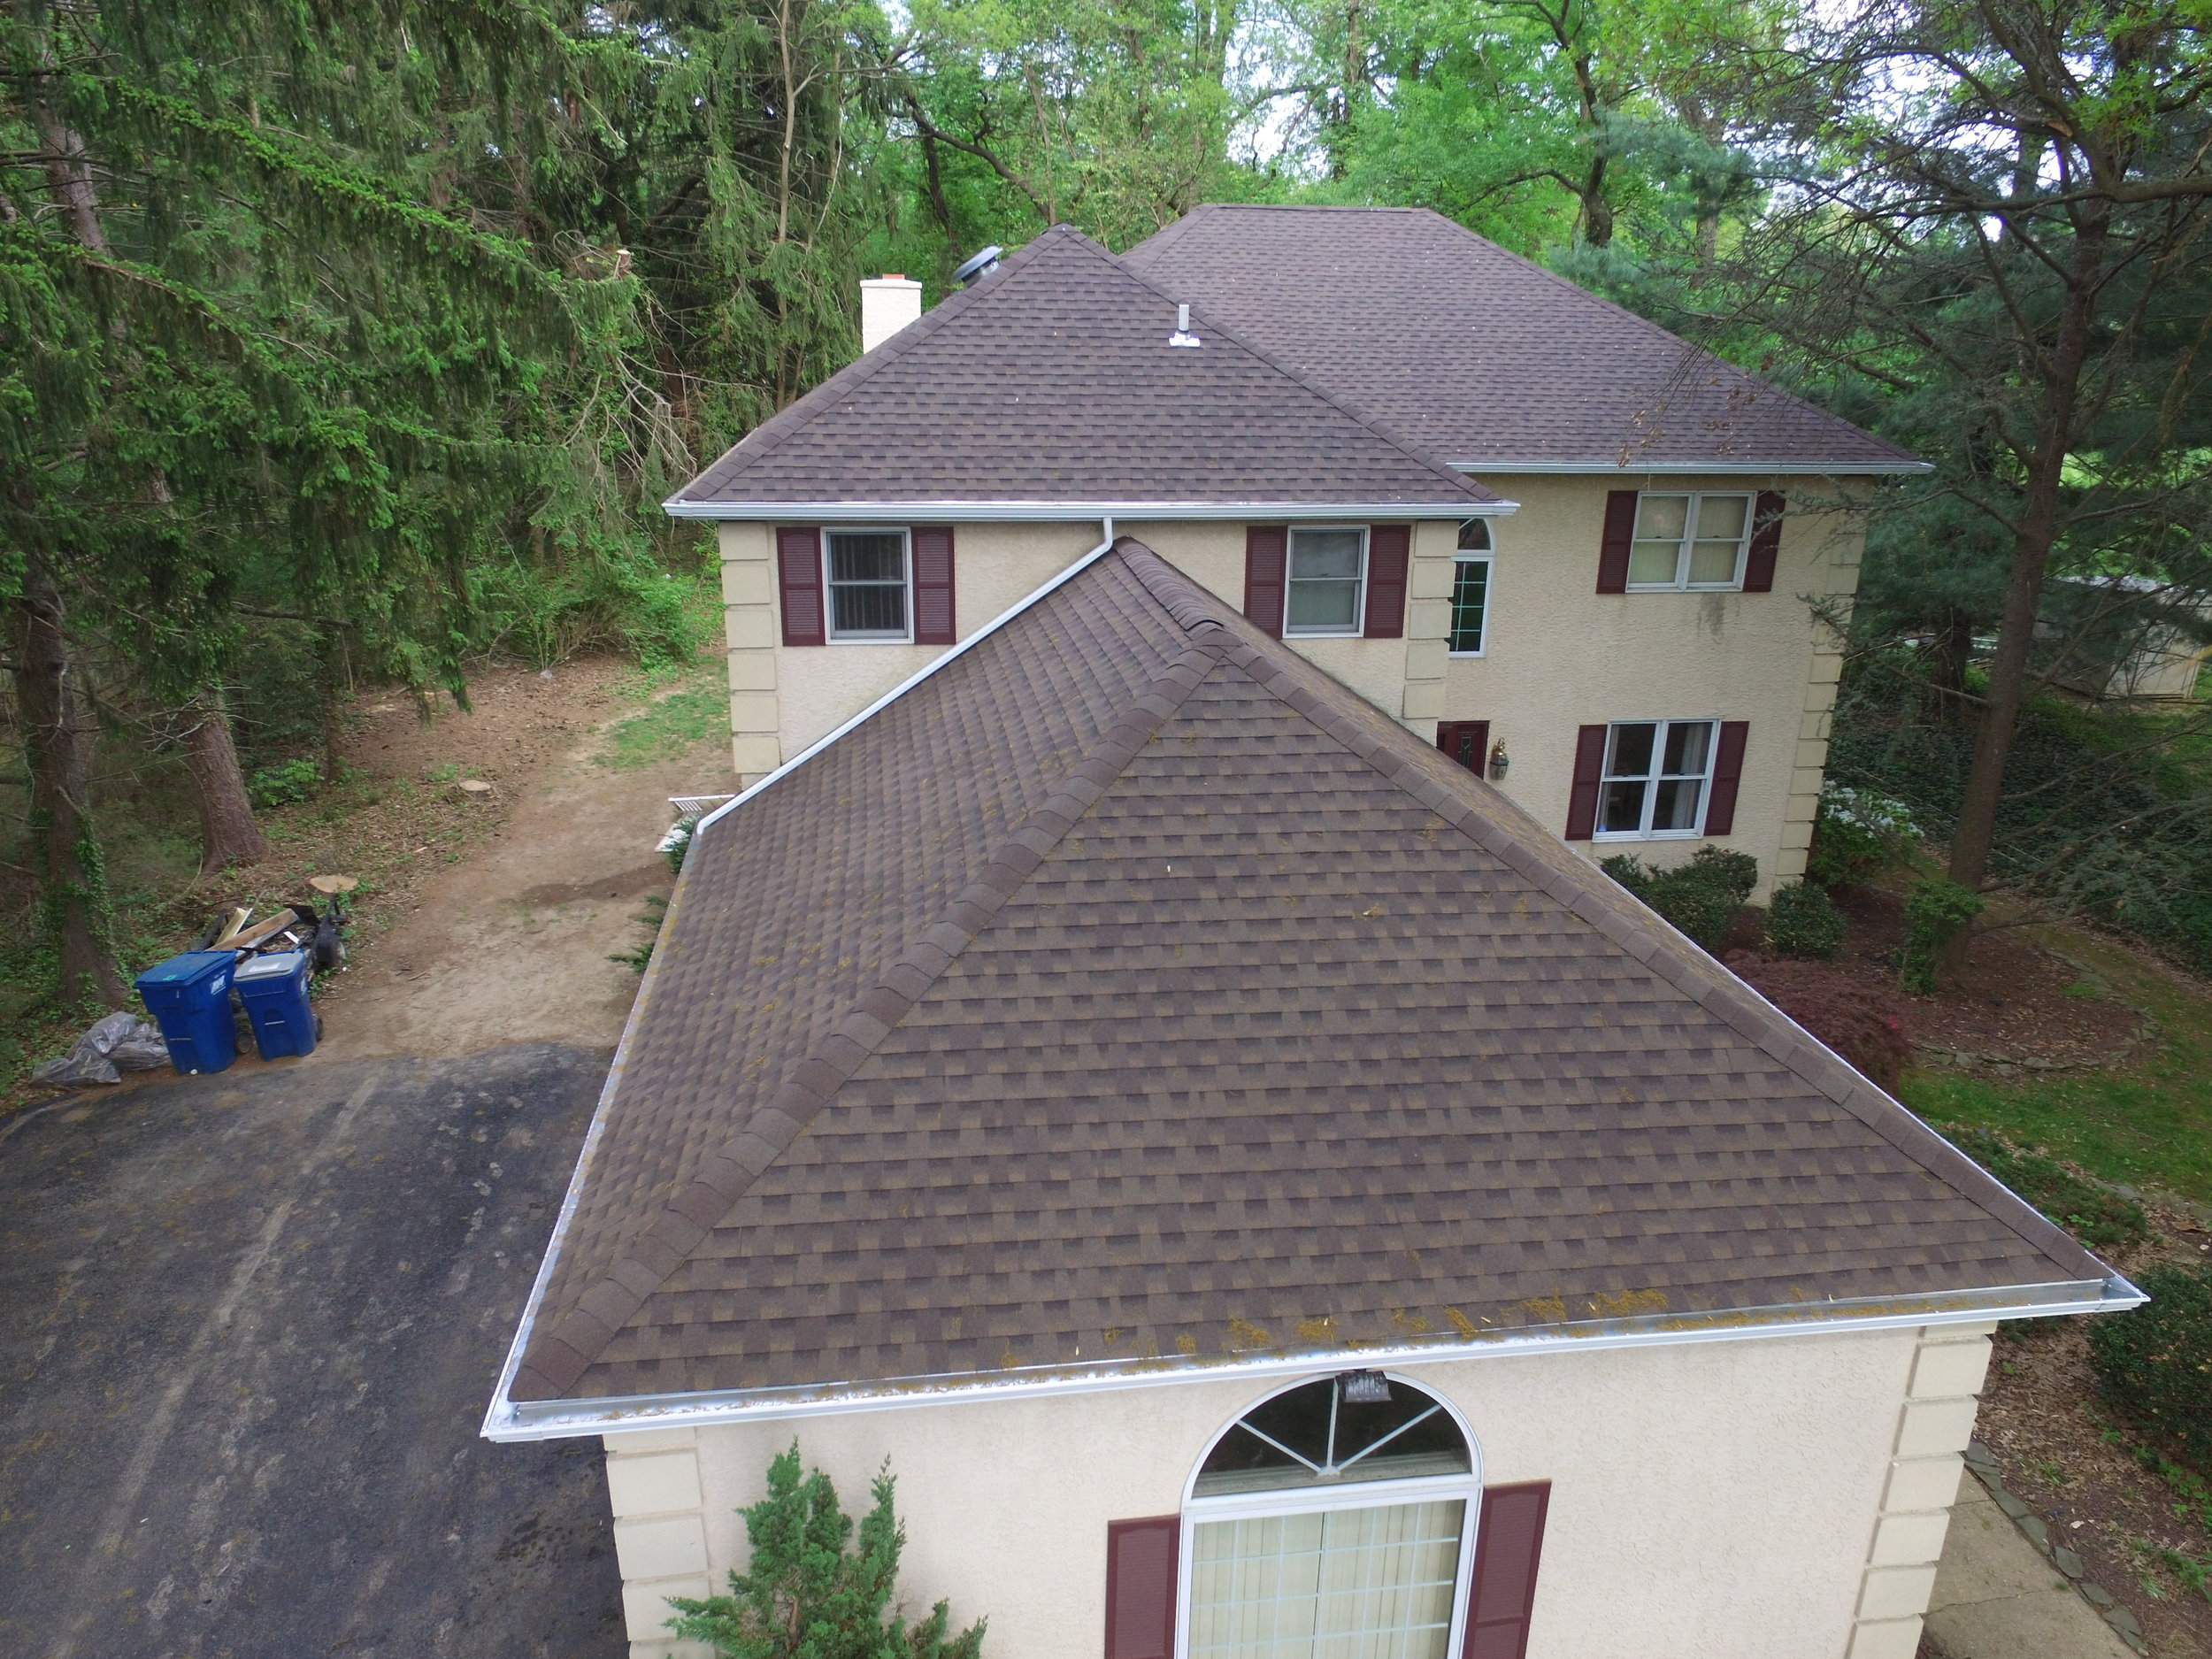 Roof replacement: After